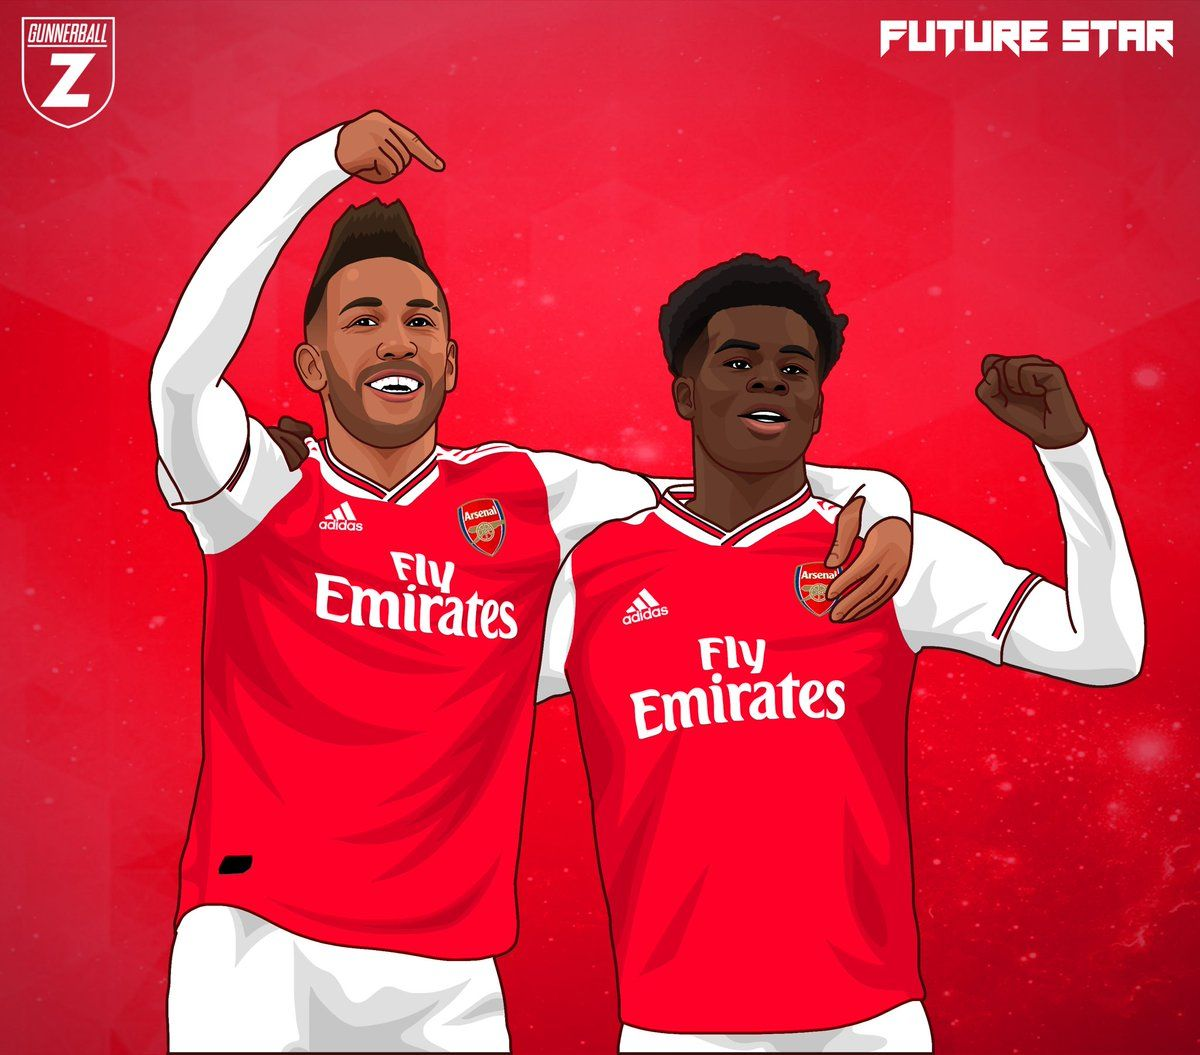 bukayo saka wallpapers wallpaper cave